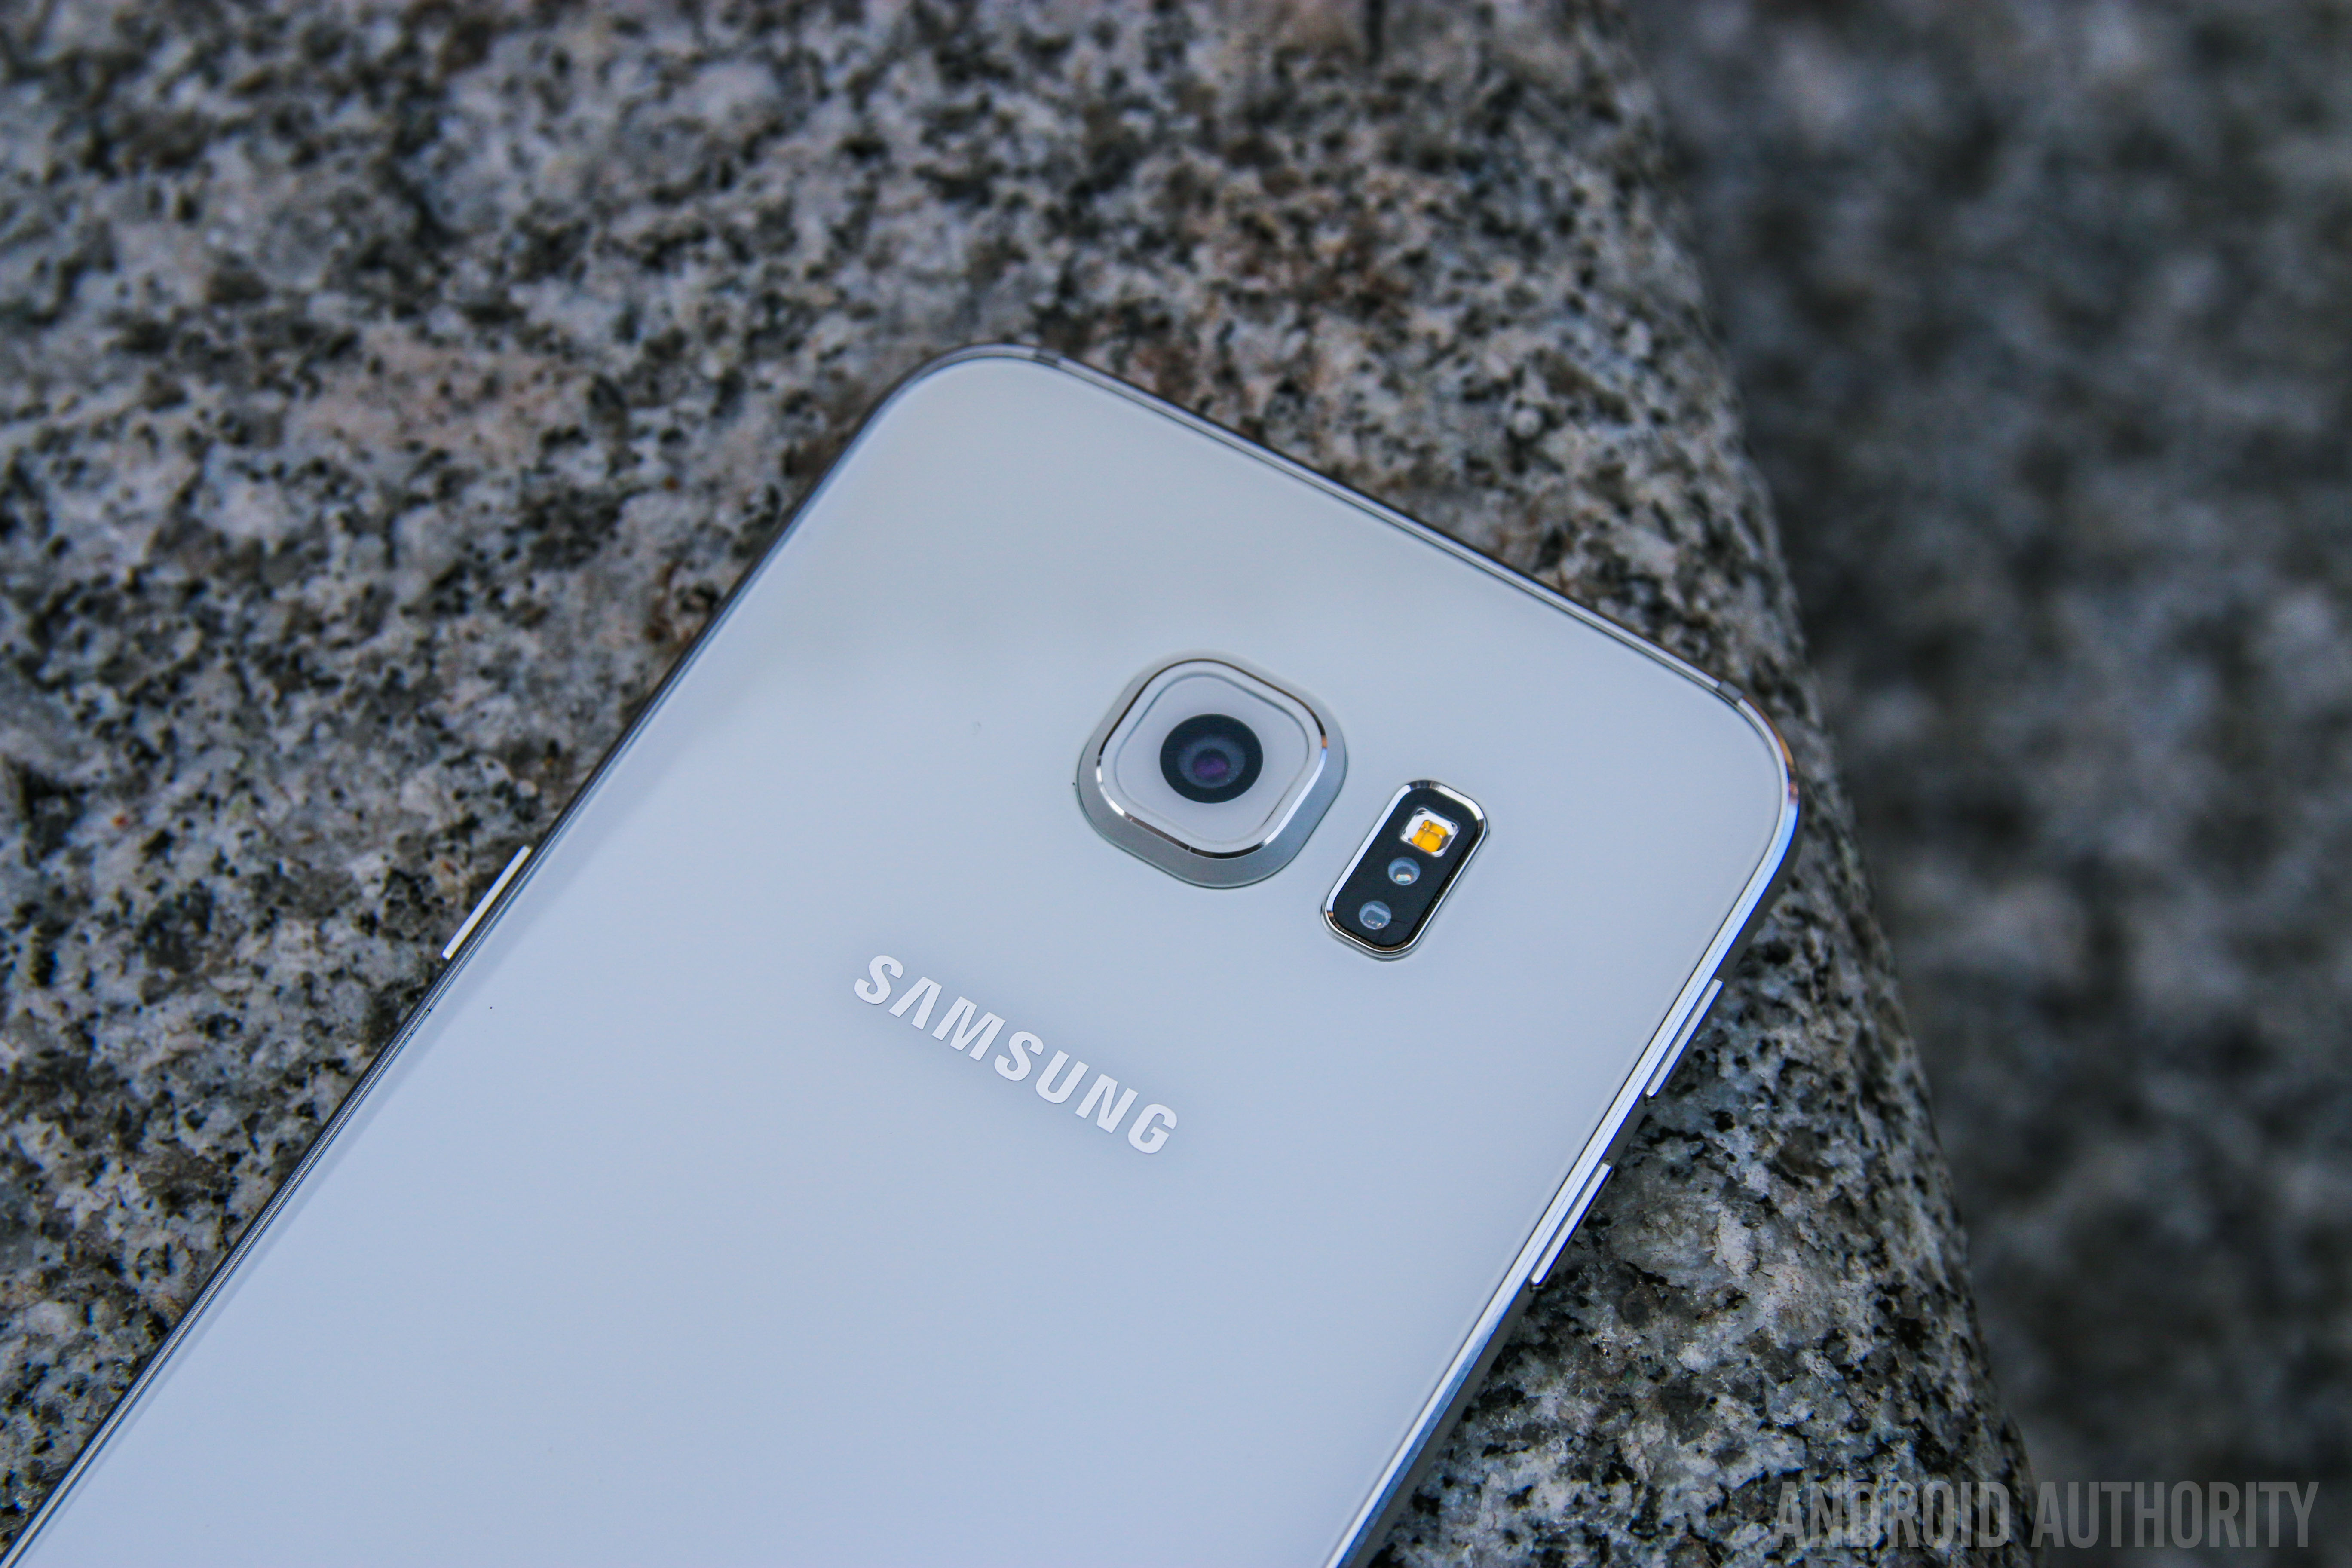 Here's a temporary fix for the missing quick toggles on your Samsung Galaxy S6 or S6 Edge